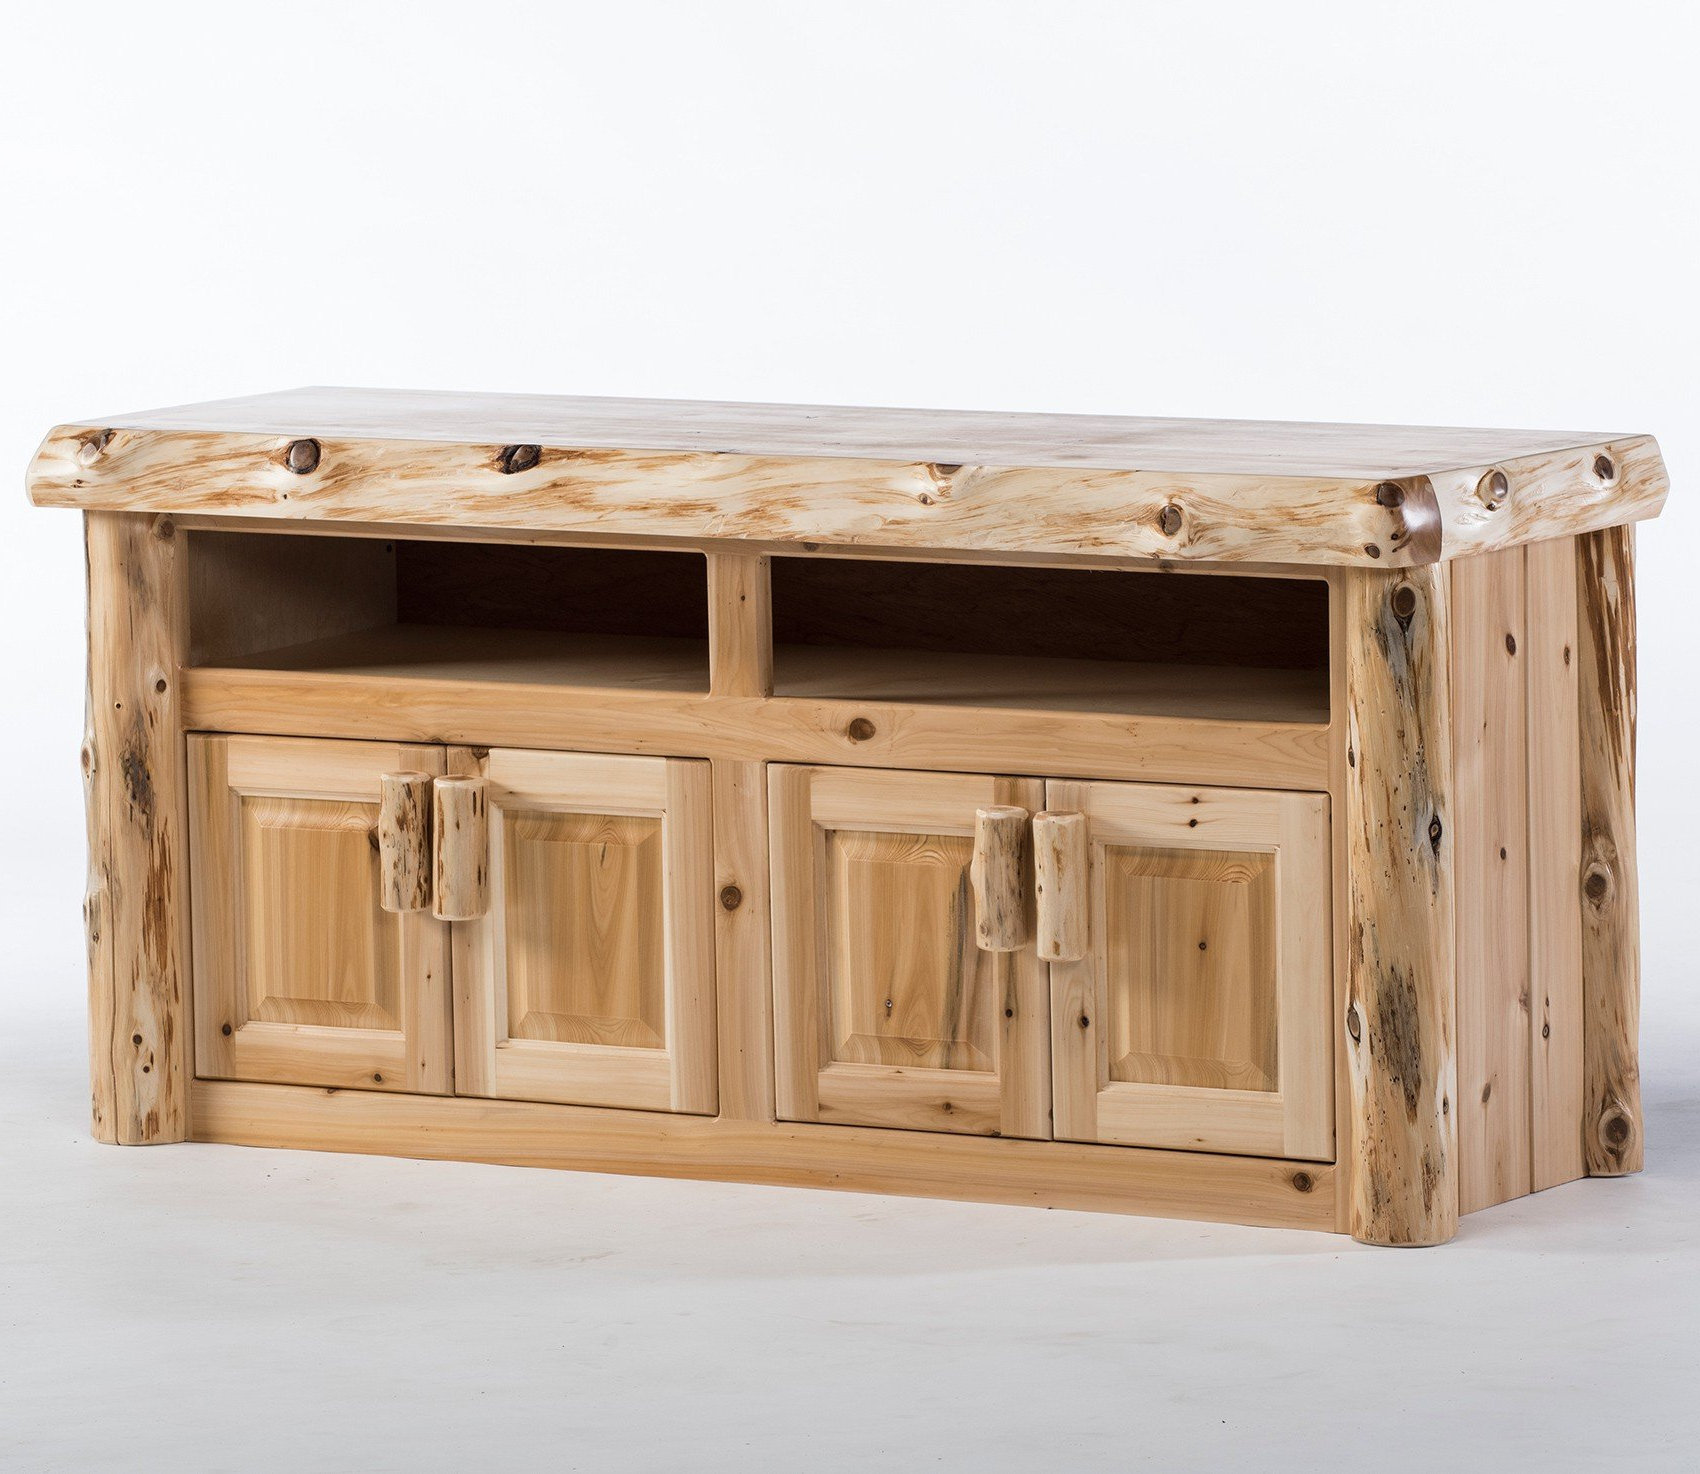 Cheap Rustic Tv Stands Within Recent Reclaimed Wood Tv Stands & Rustic Tv Stands: Log Tv Stand & Rustic (View 6 of 20)